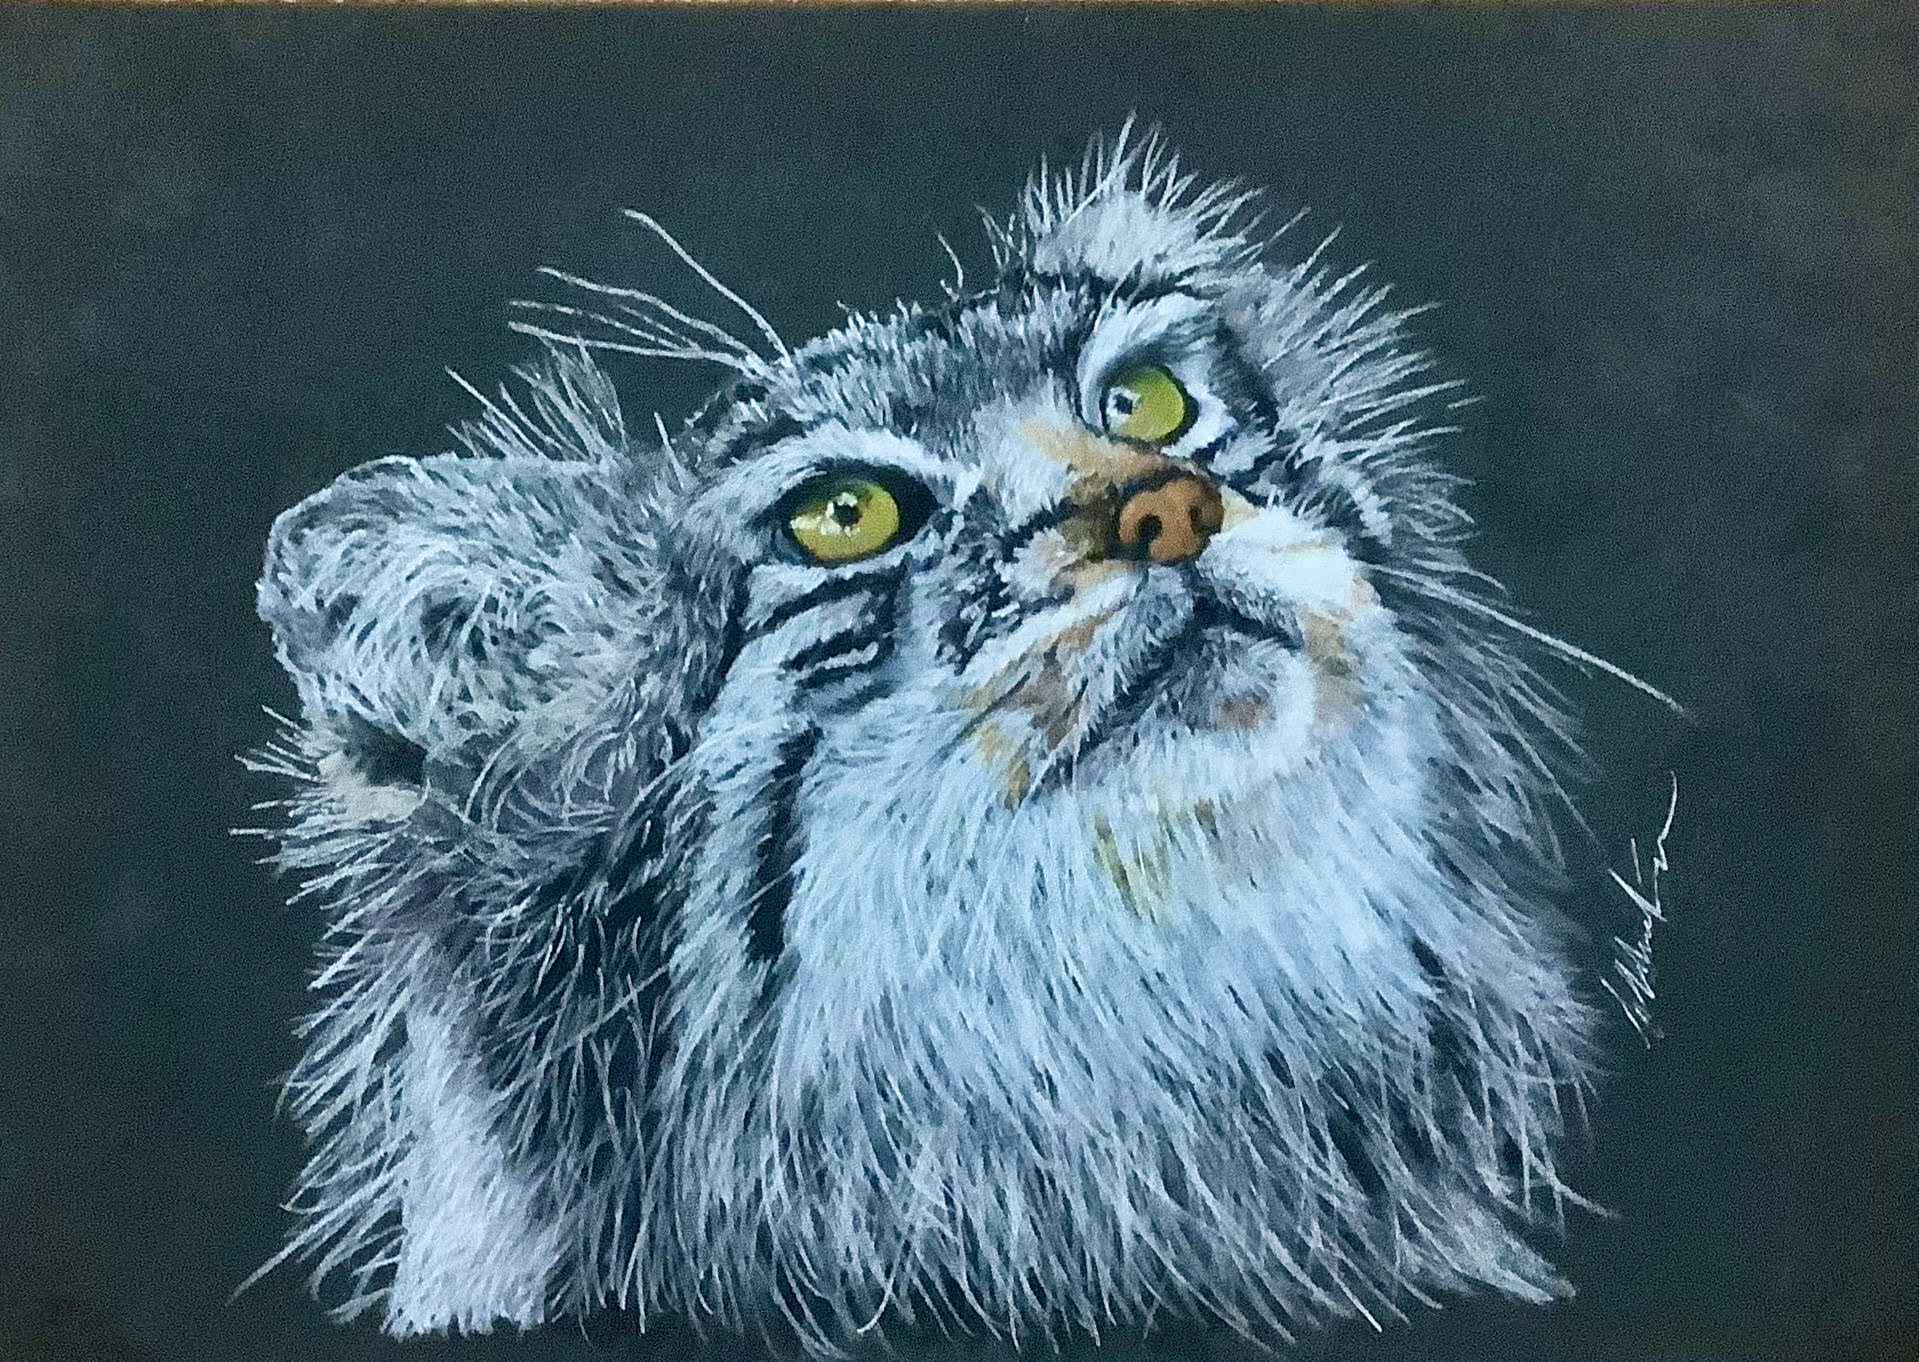 Jethro Pallas Cat By Carolynne Winchester - Coloured Pencil - framed 33.5x38.5cm £125